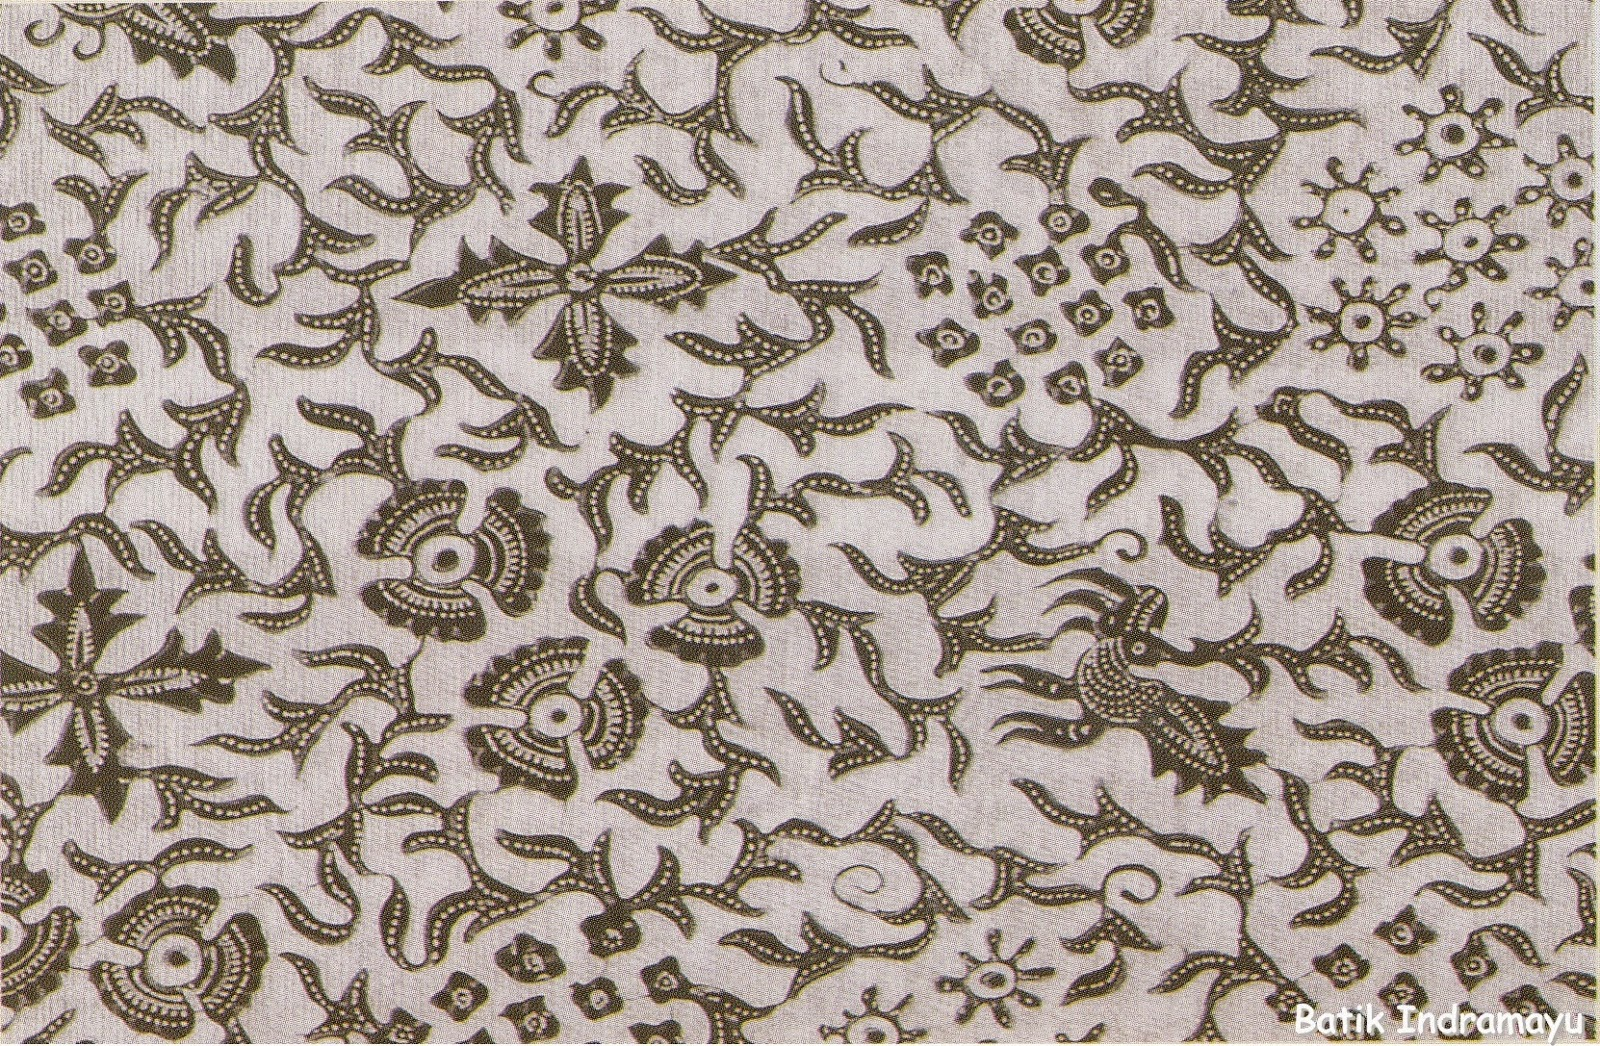 beautiful Indramayu Batik pattern